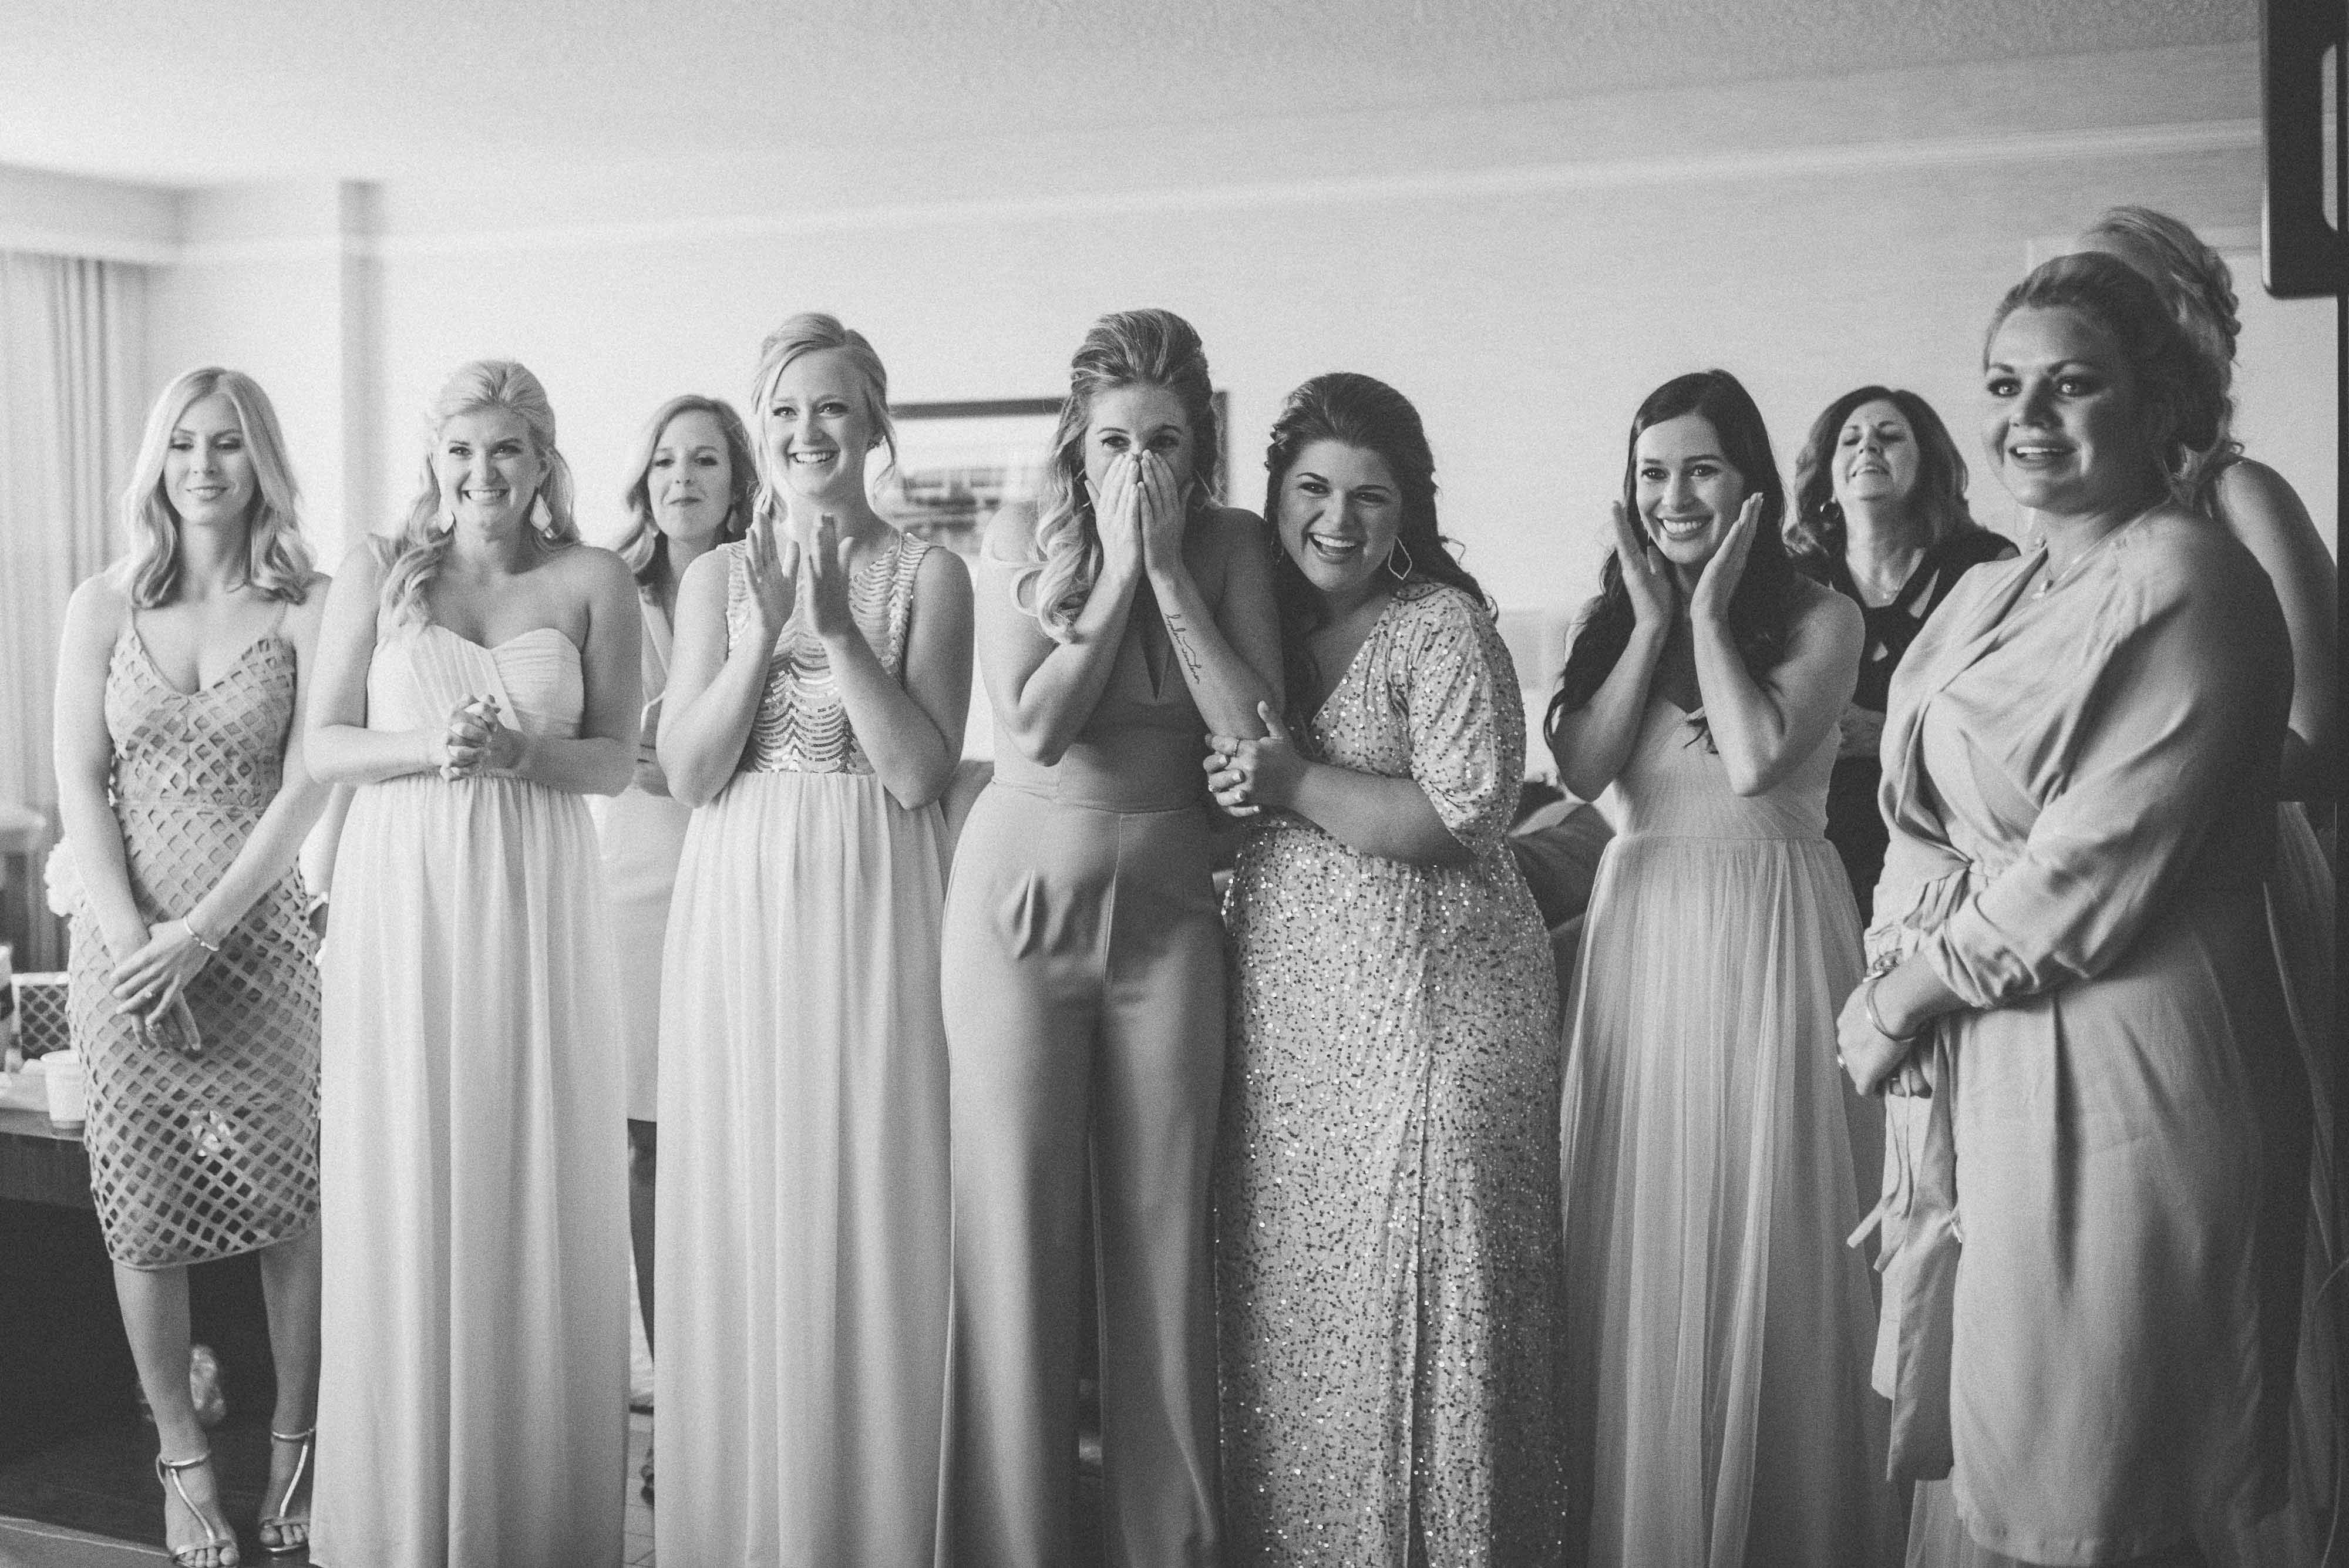 10 brilliant tips to bridesmaid bliss bride guide 10 brilliant tips to bridesmaid bliss ombrellifo Image collections